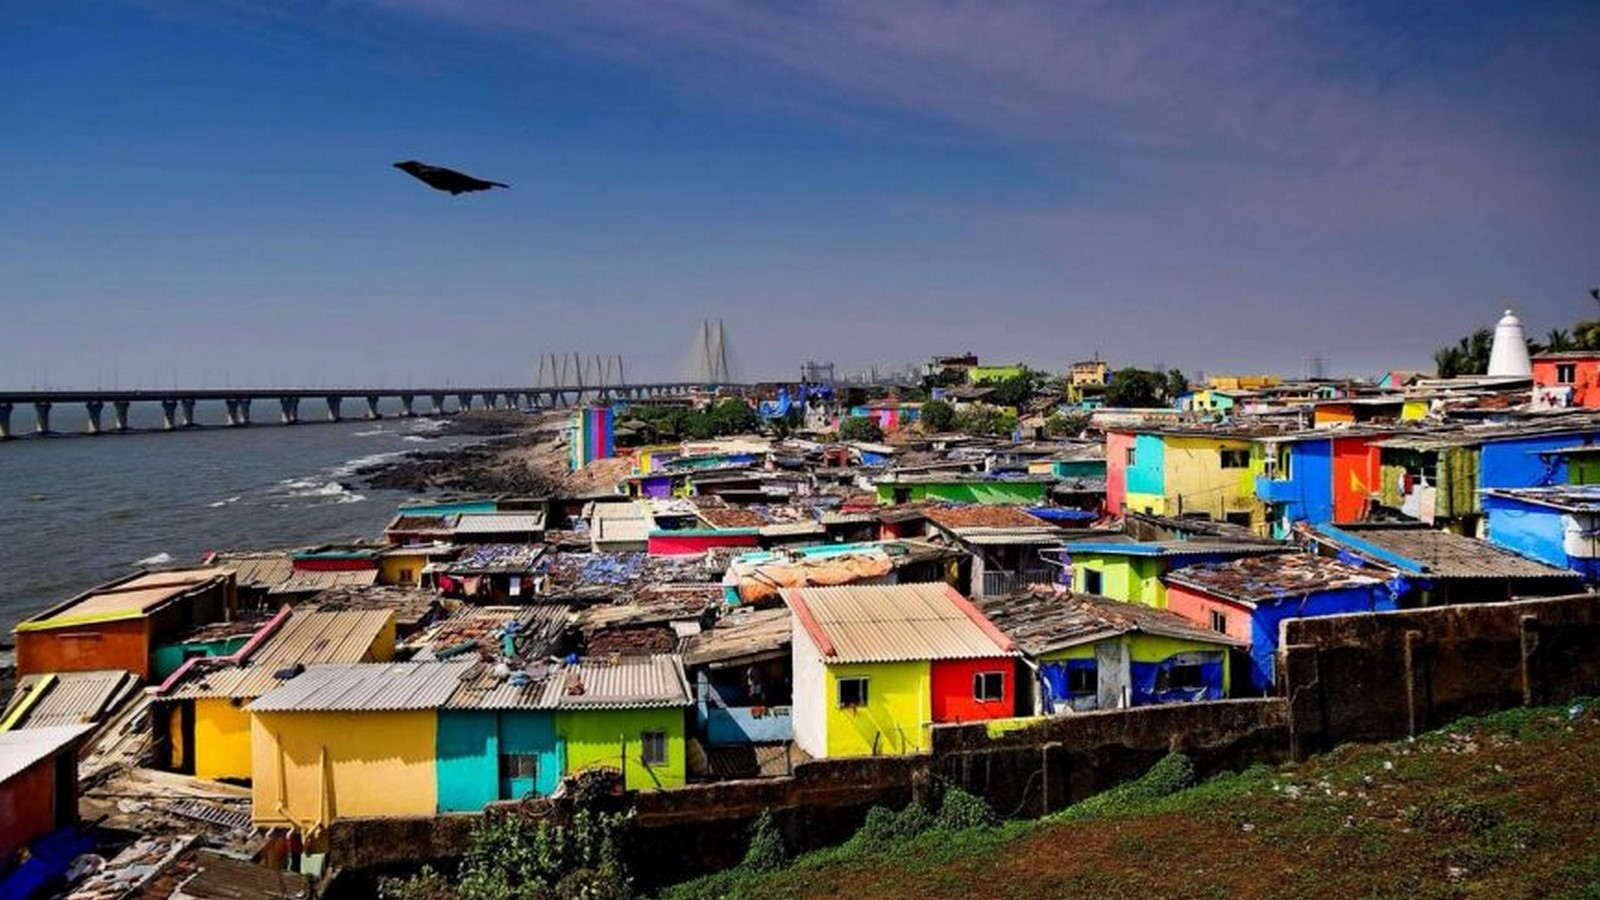 How does the cultural diversity in Mumbai reflect in its architecture? - Sheet2